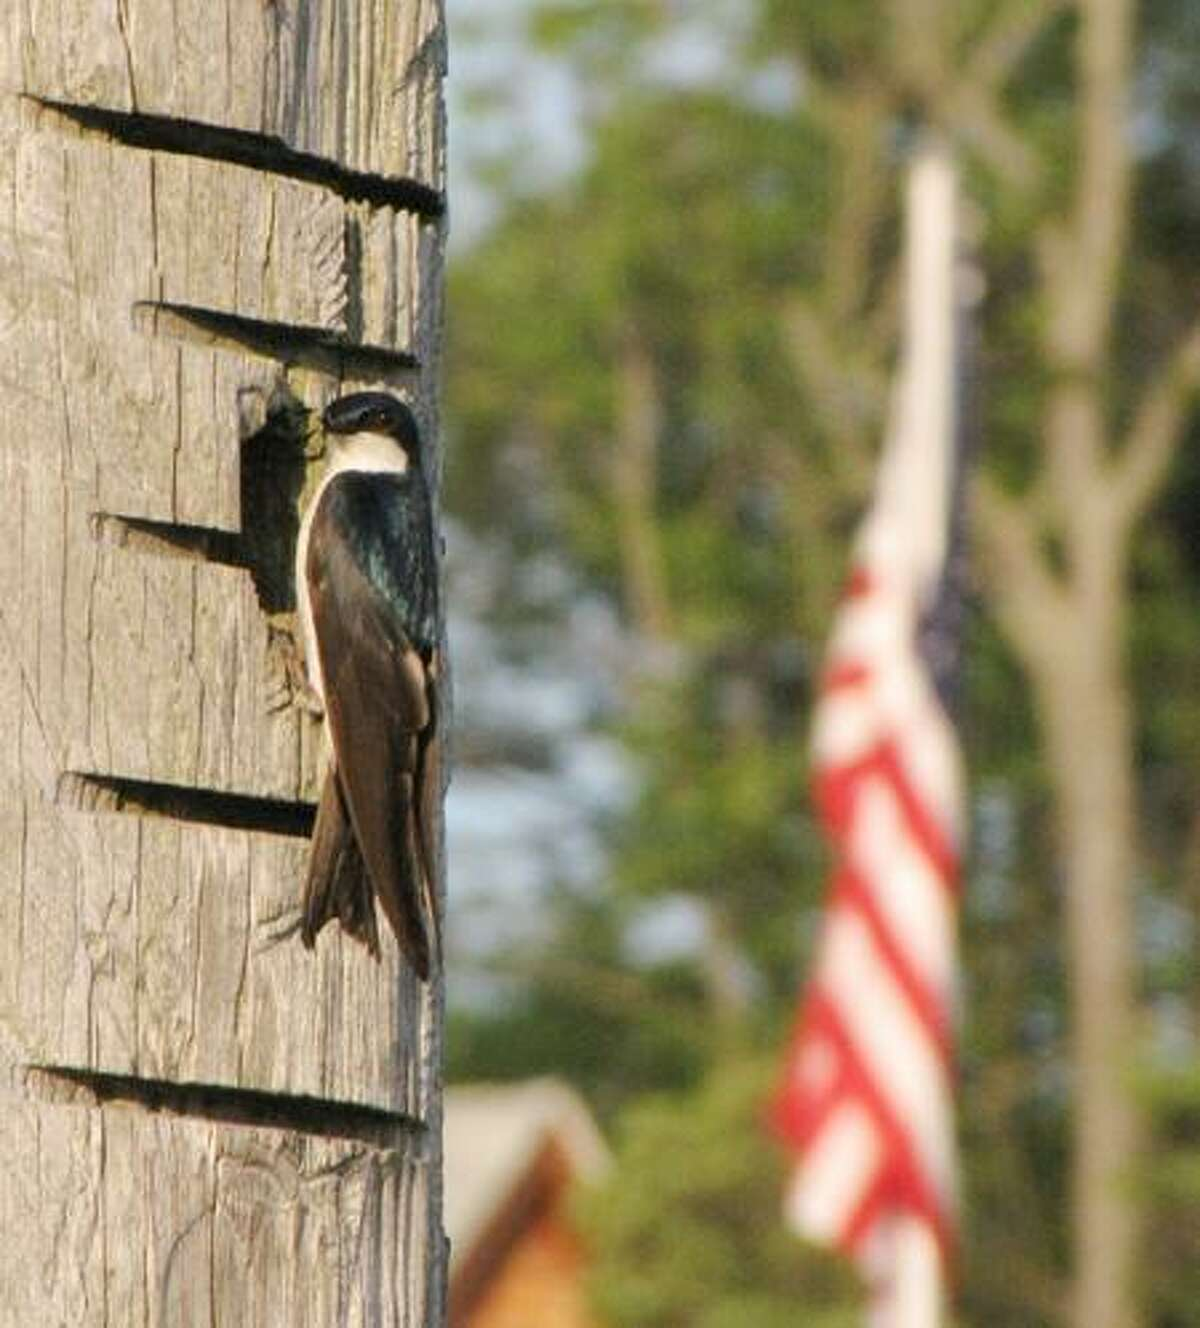 PERFECT FOR THE 4TH OF JULY: Robert Fort of East Haven sent along this photo and wrote, this tree swallow